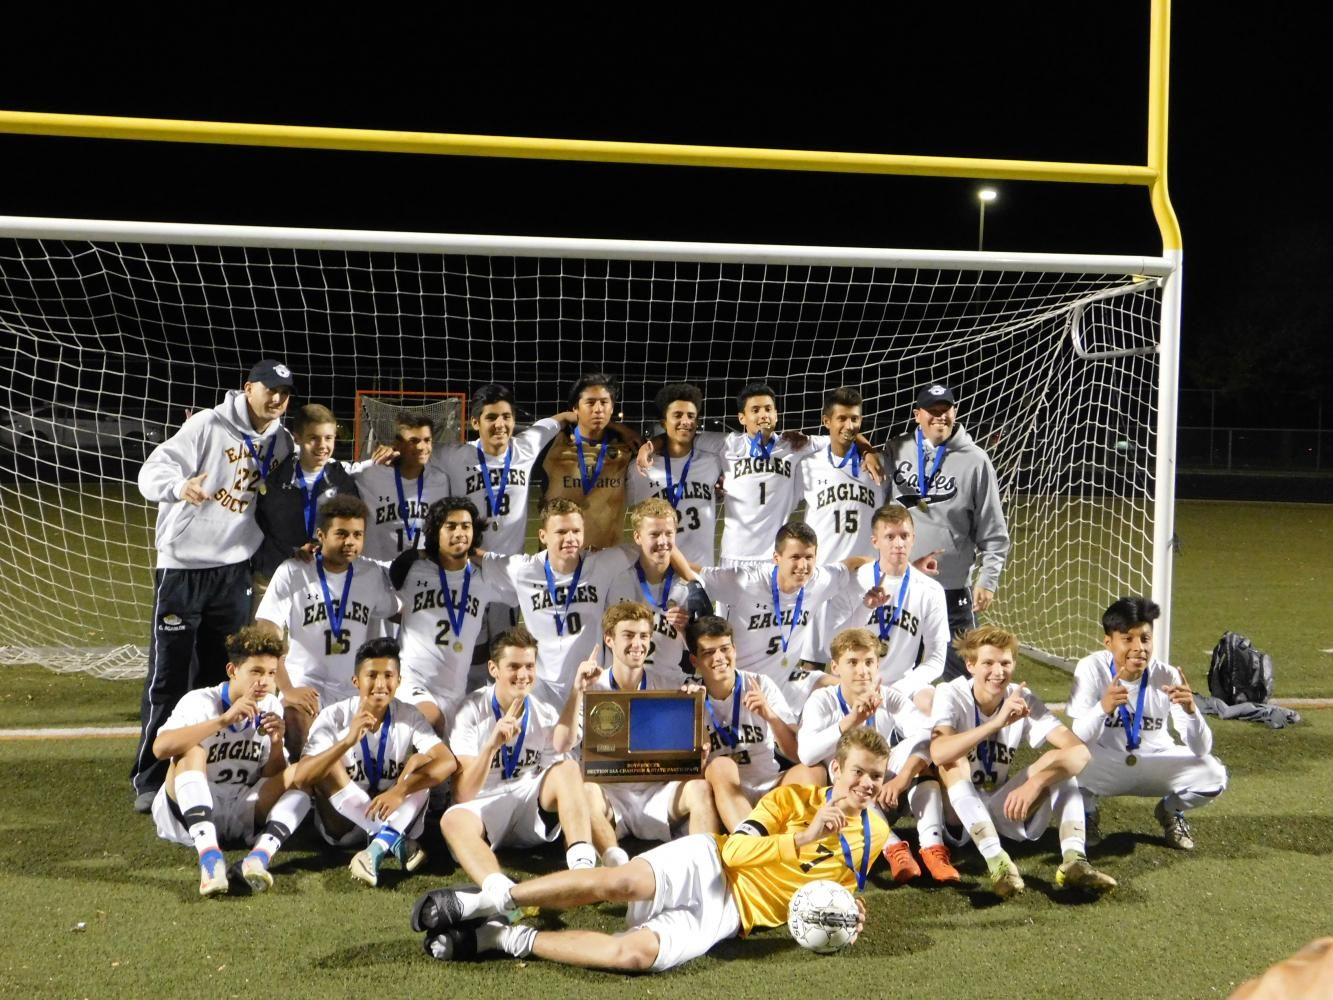 An overtime win over Rosemount vaulted the Eagles to the state tournament.